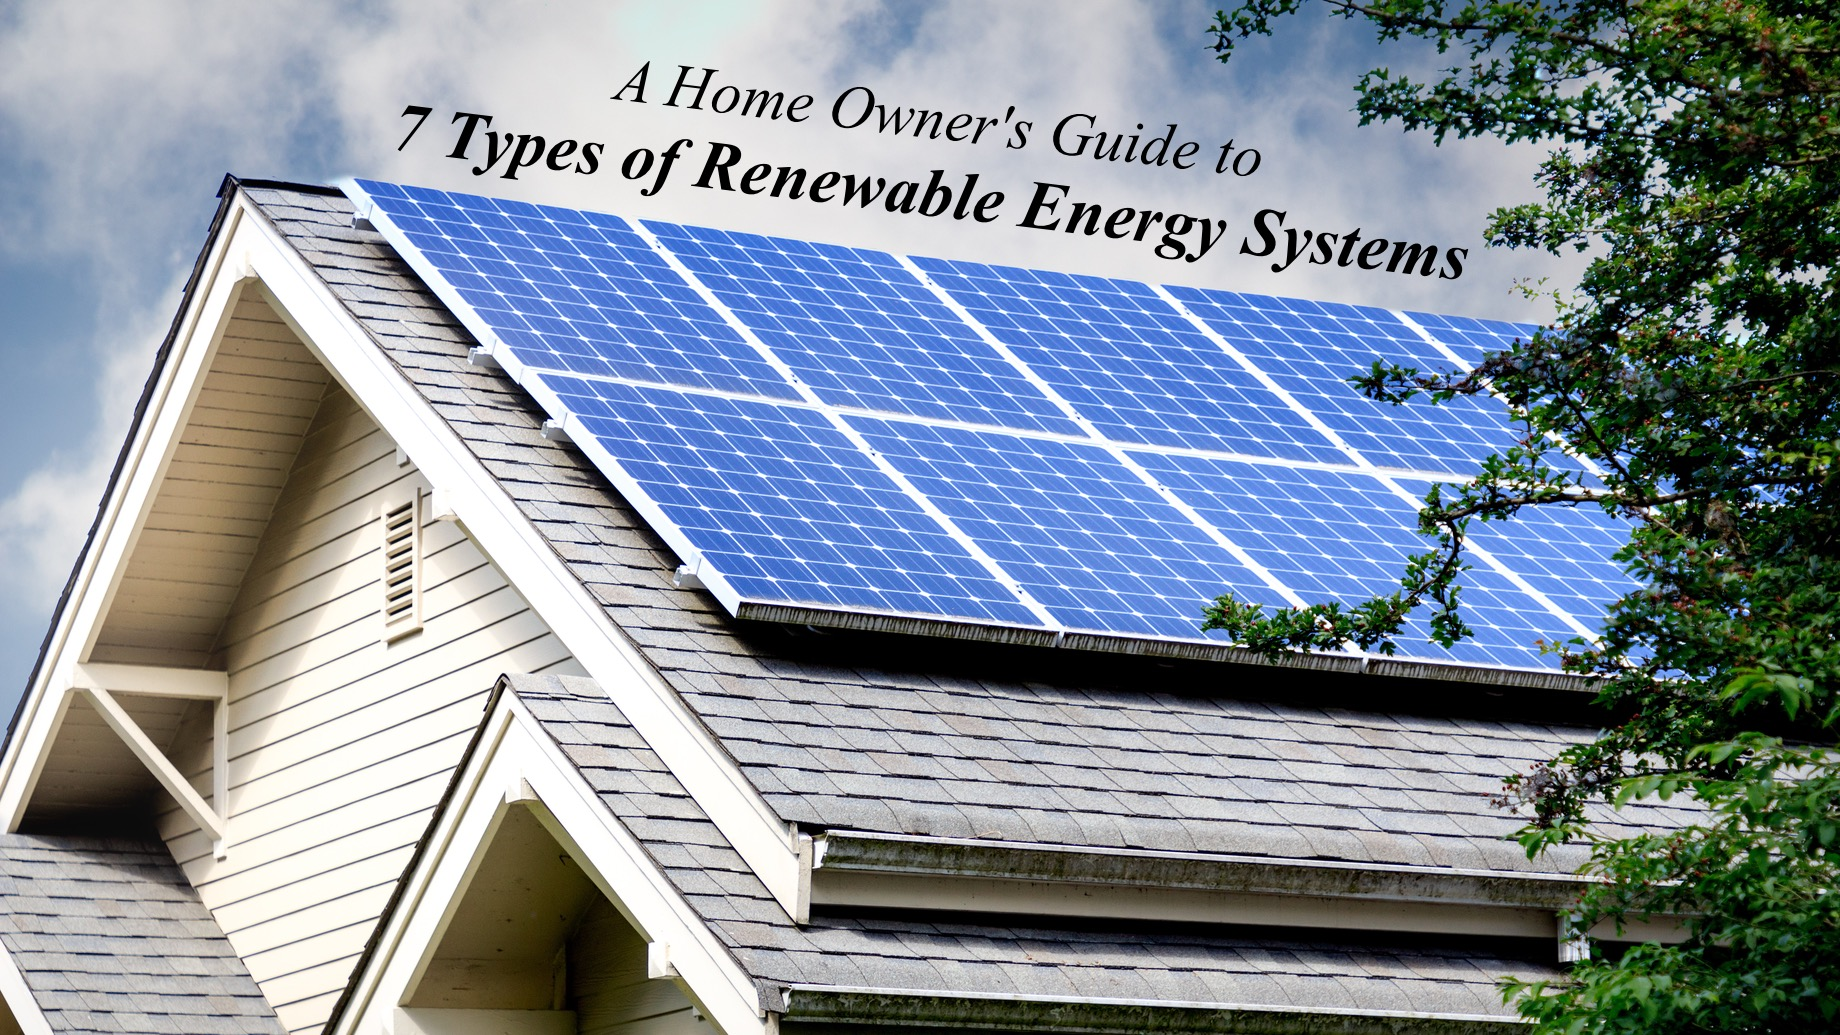 A Home Owner's Guide to 7 Types of Renewable Energy Systems